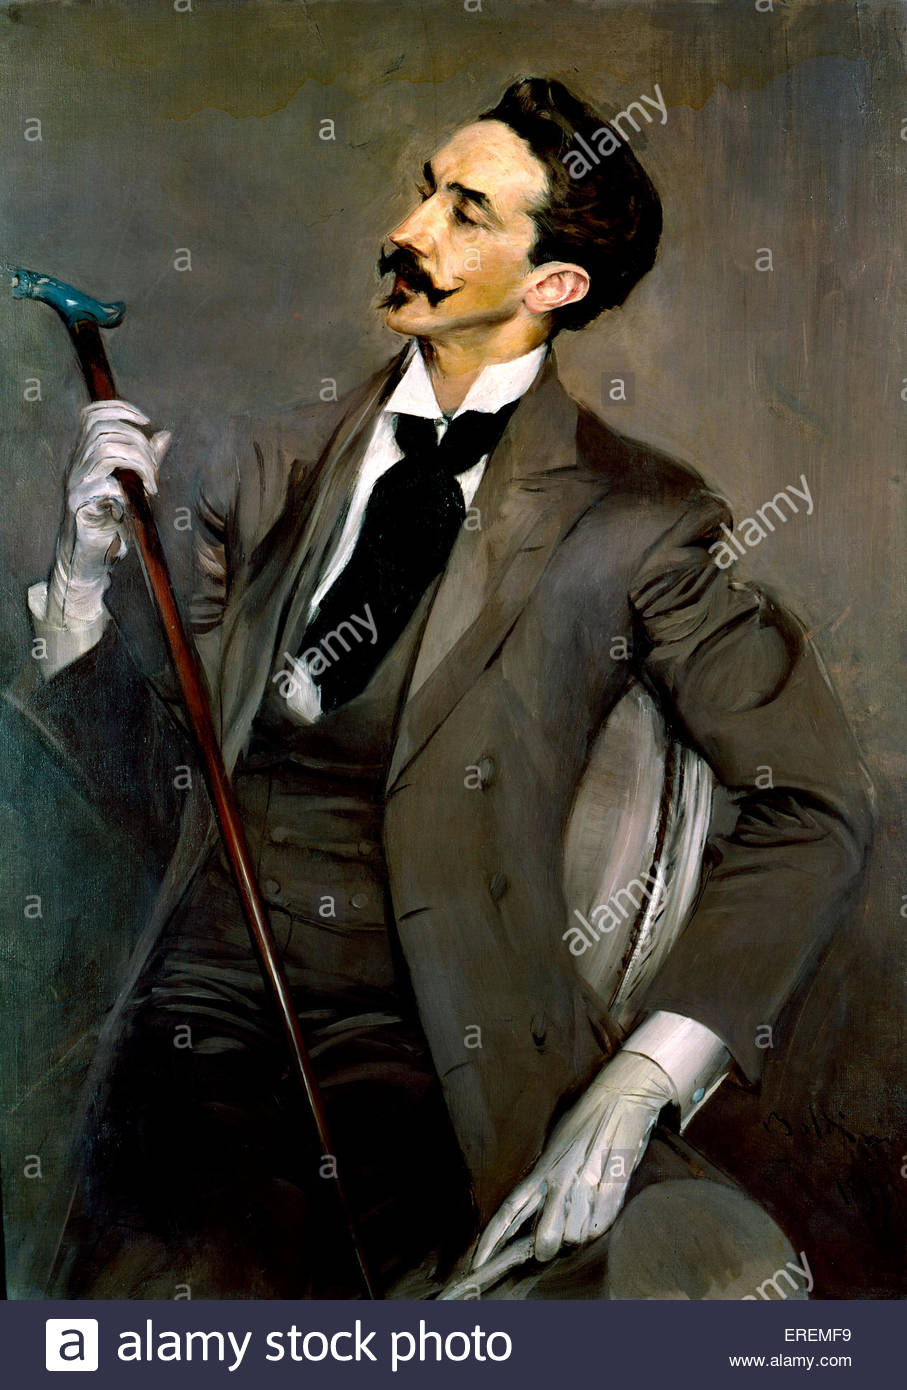 Count Robert de Montesquiou by Antonio Boldini, 1897, oil on canvas. AB: Italian painter (1842 – 1931).R de M: French - Stock Image